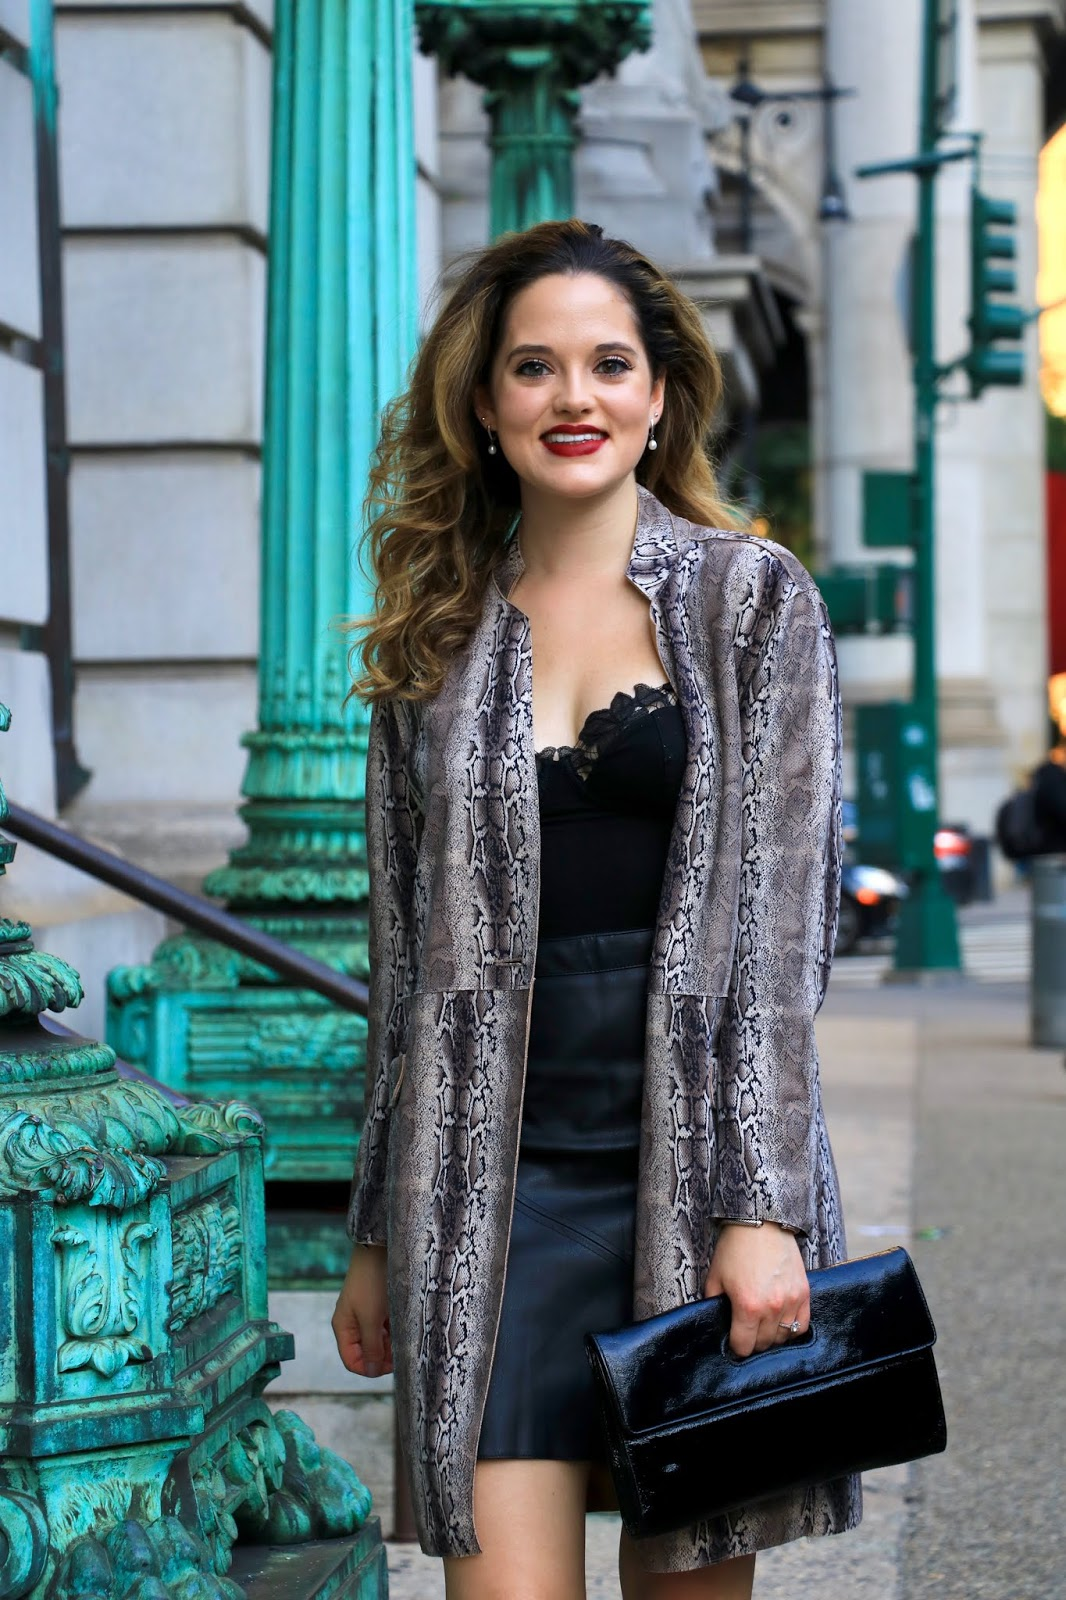 Nyc fashion blogger Kathleen Harper wearing a fall outfit with a snake print jacket.